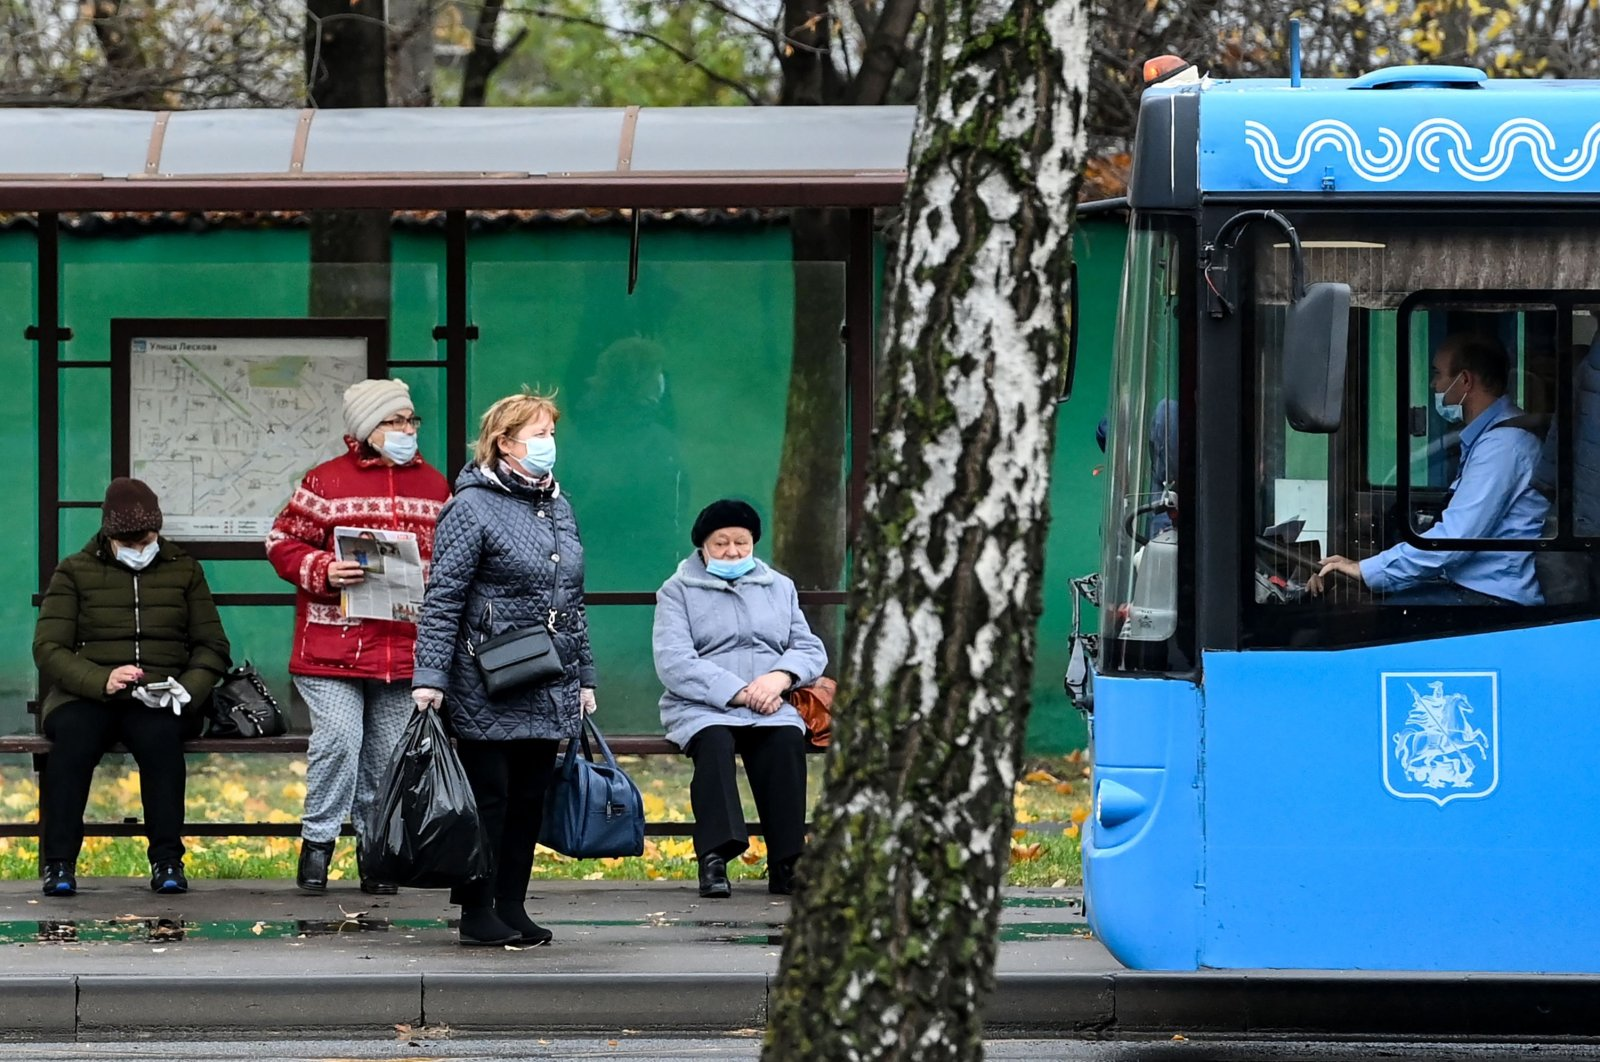 People wearing protective facemasks, amid the coronavirus disease ( COVID-19) pandemic, prepare to board a bus in Moscow, Russia, Nov. 5, 2020. (AFP Photo)